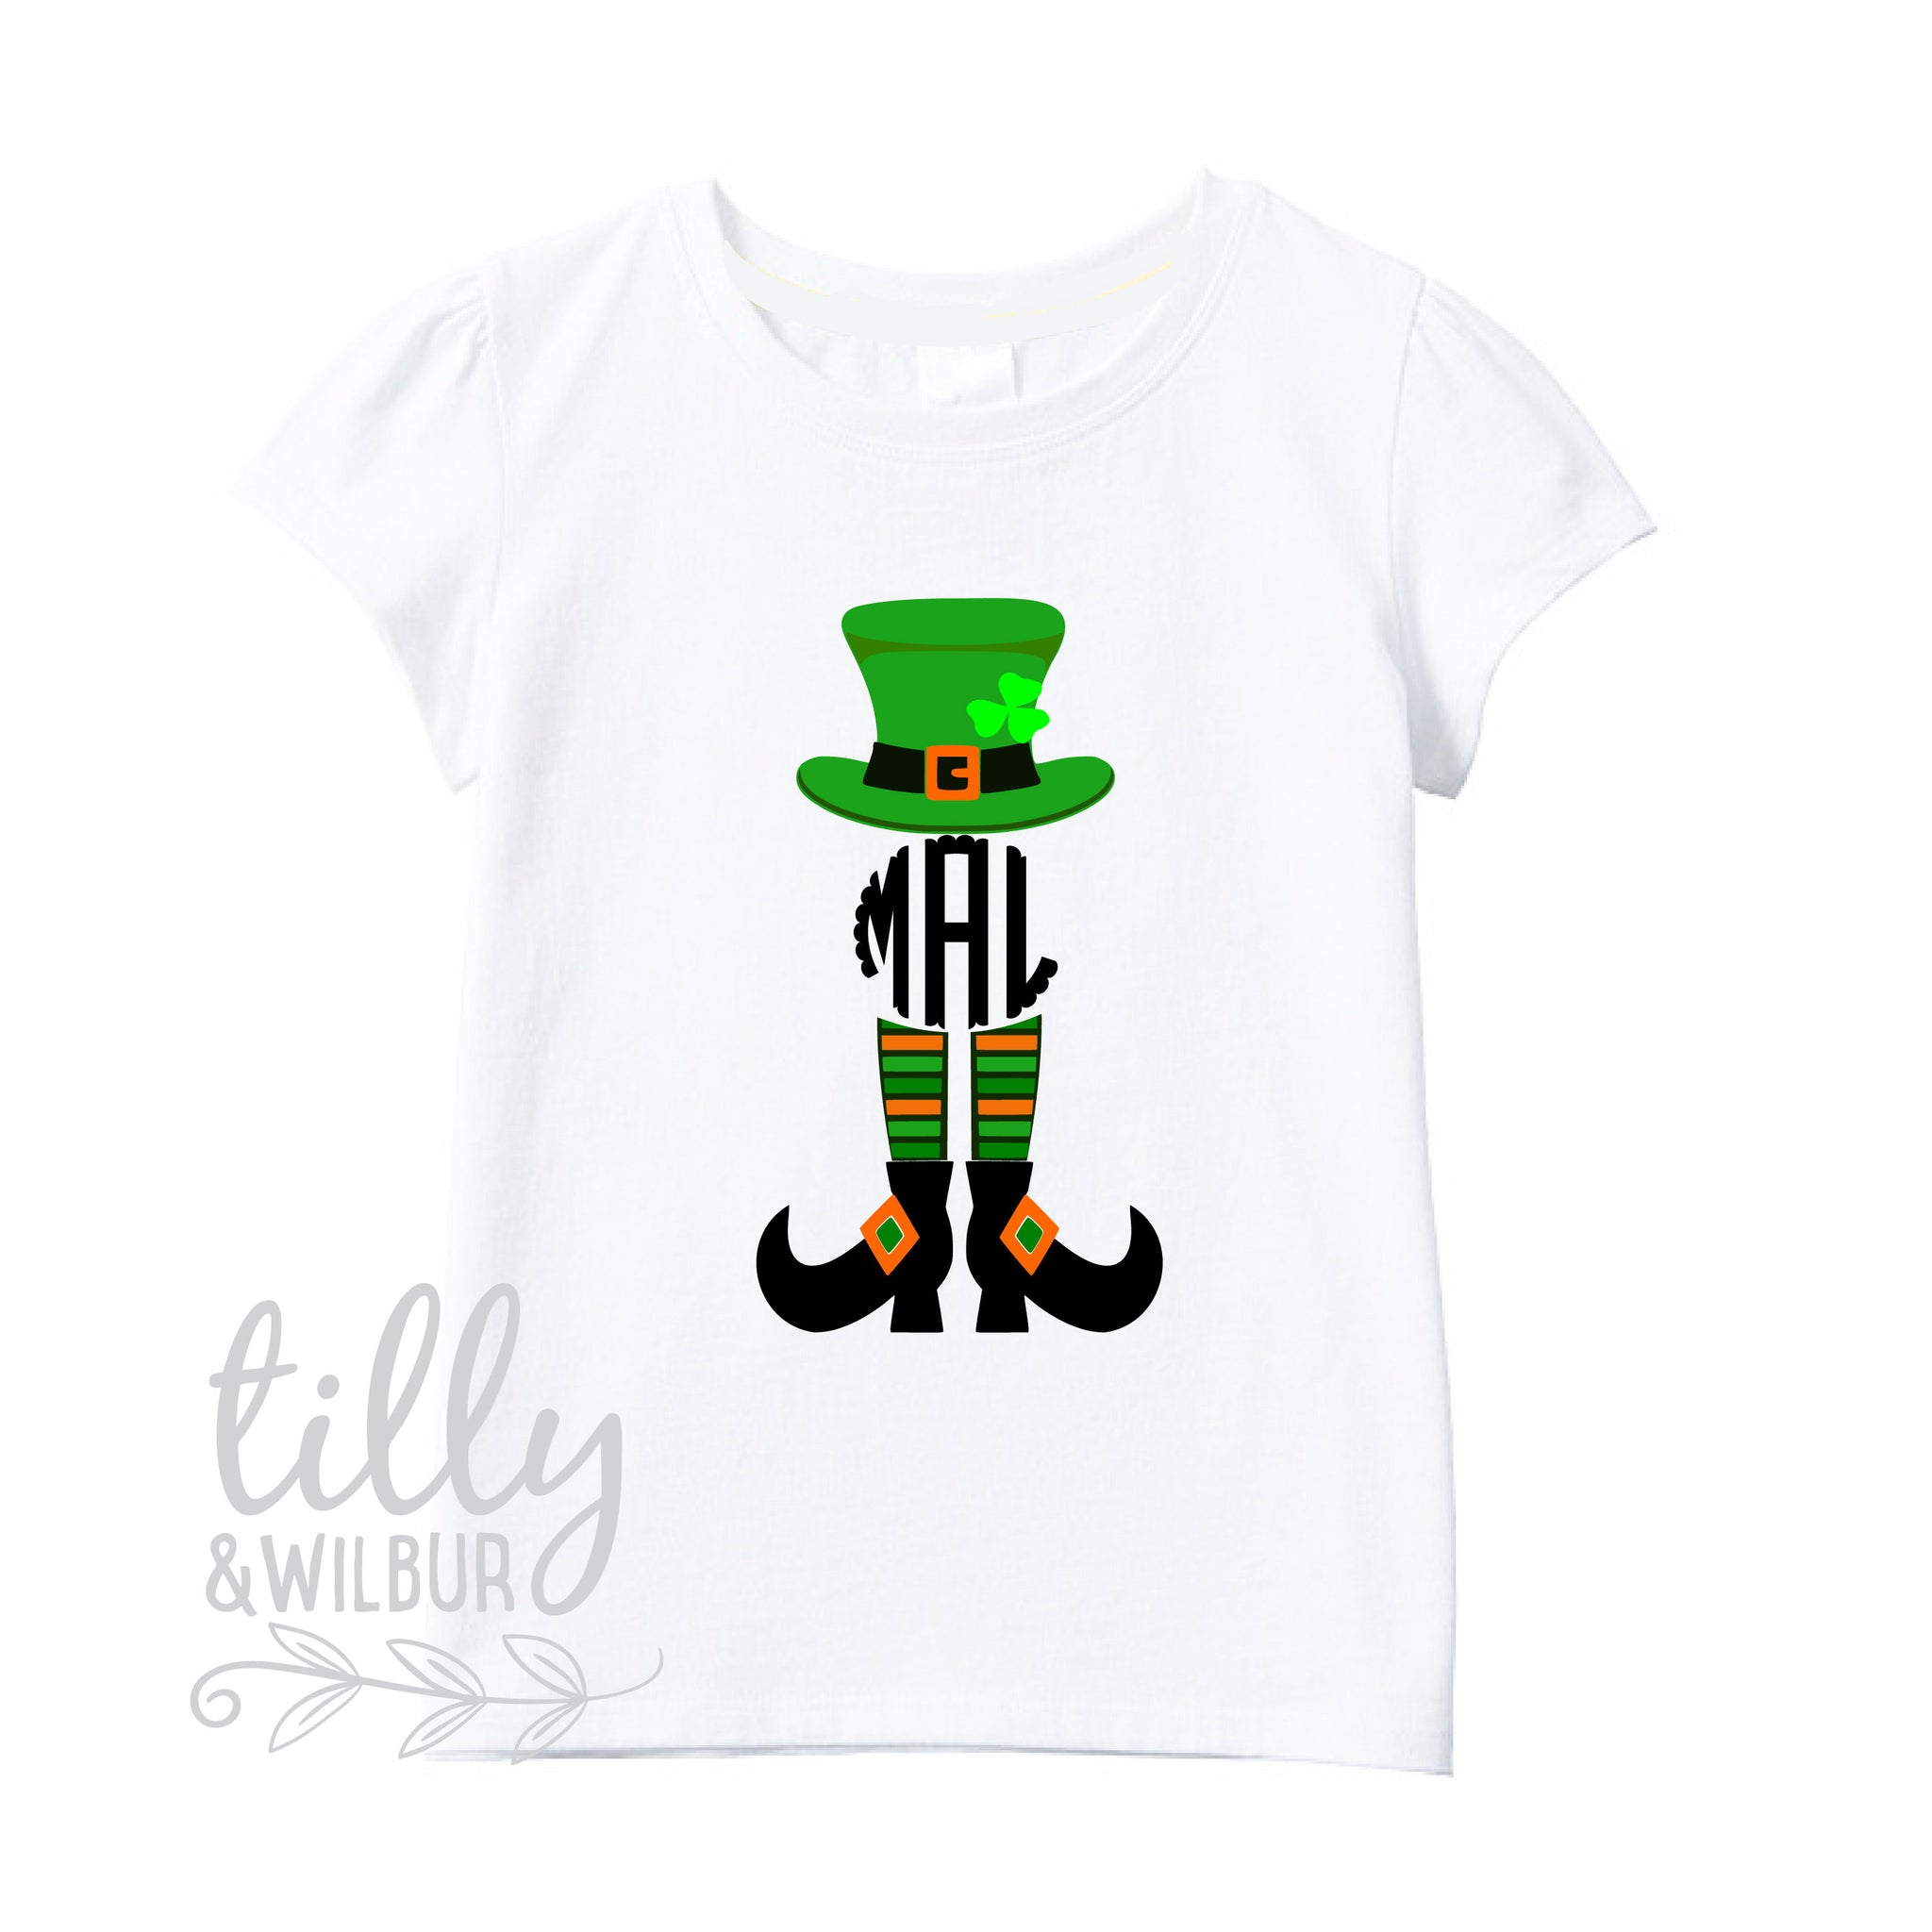 07268e9ad St Patrick's Day Personalised Girls T-Shirt, St Patrick's Day Shirt  Personalised With Monogram